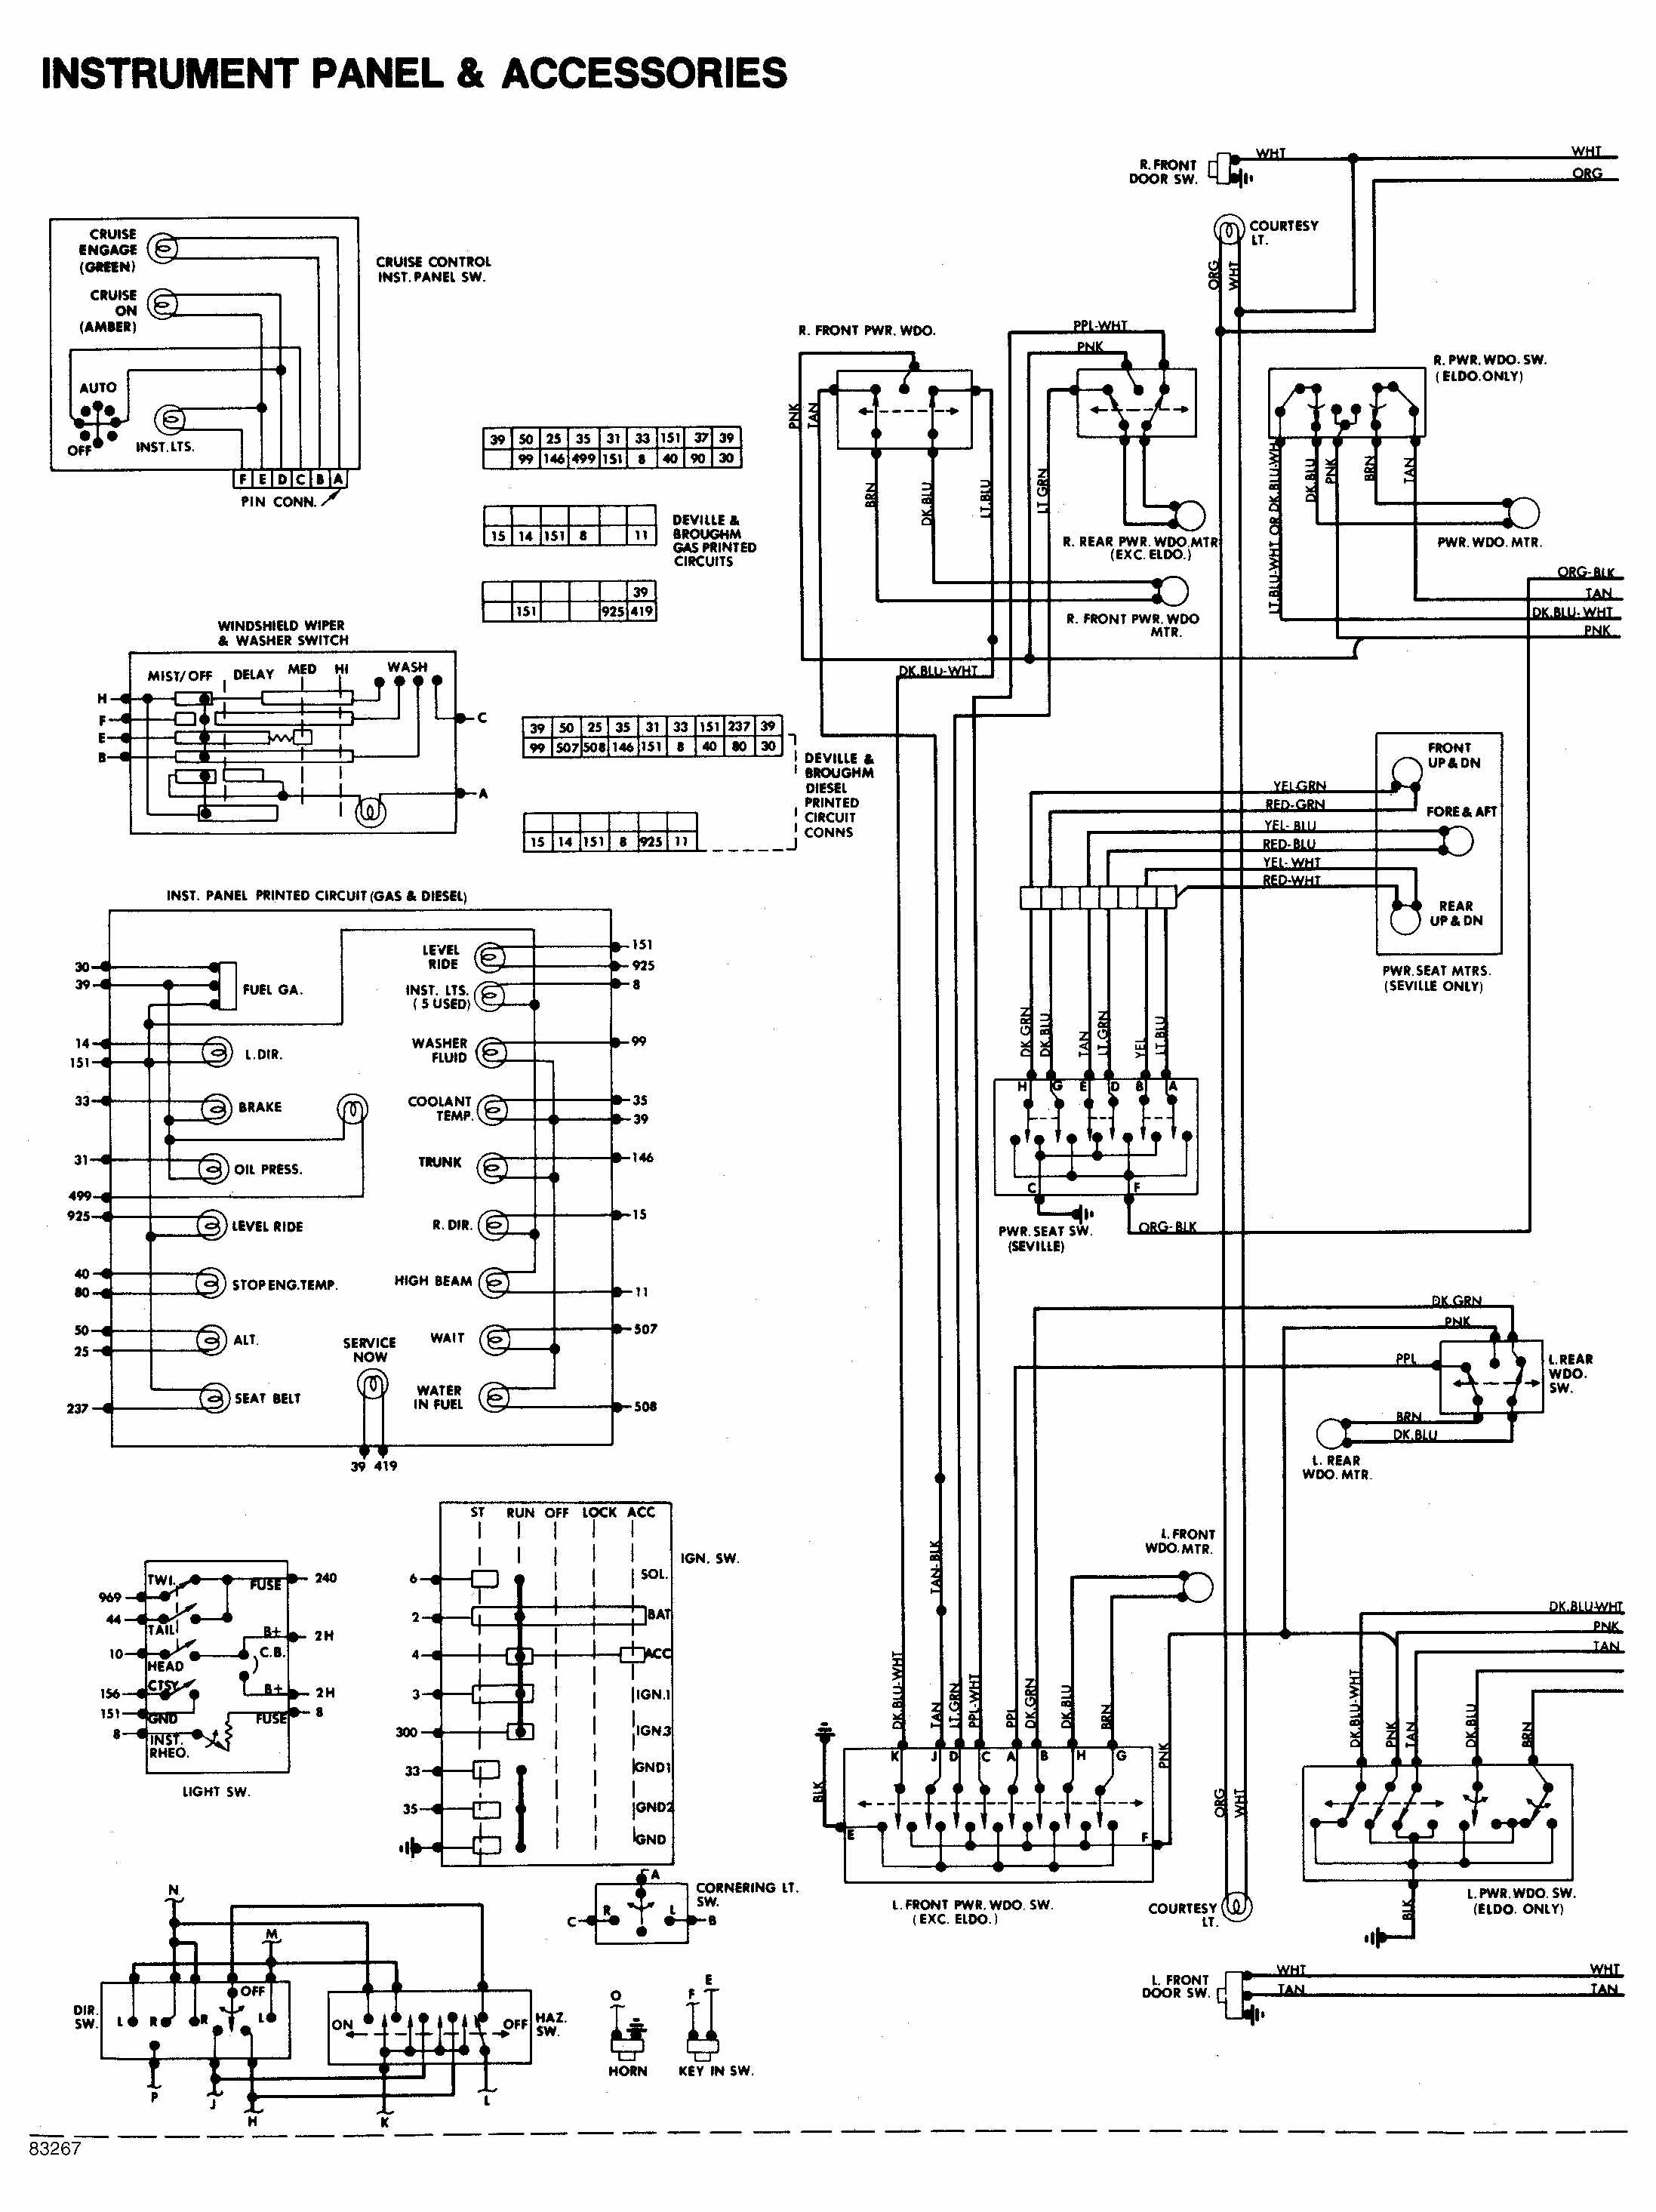 1970 cadillac wiring diagram 1970 wiring diagrams online 1984 cadillac deville instrument panel and accessories wiring diagram